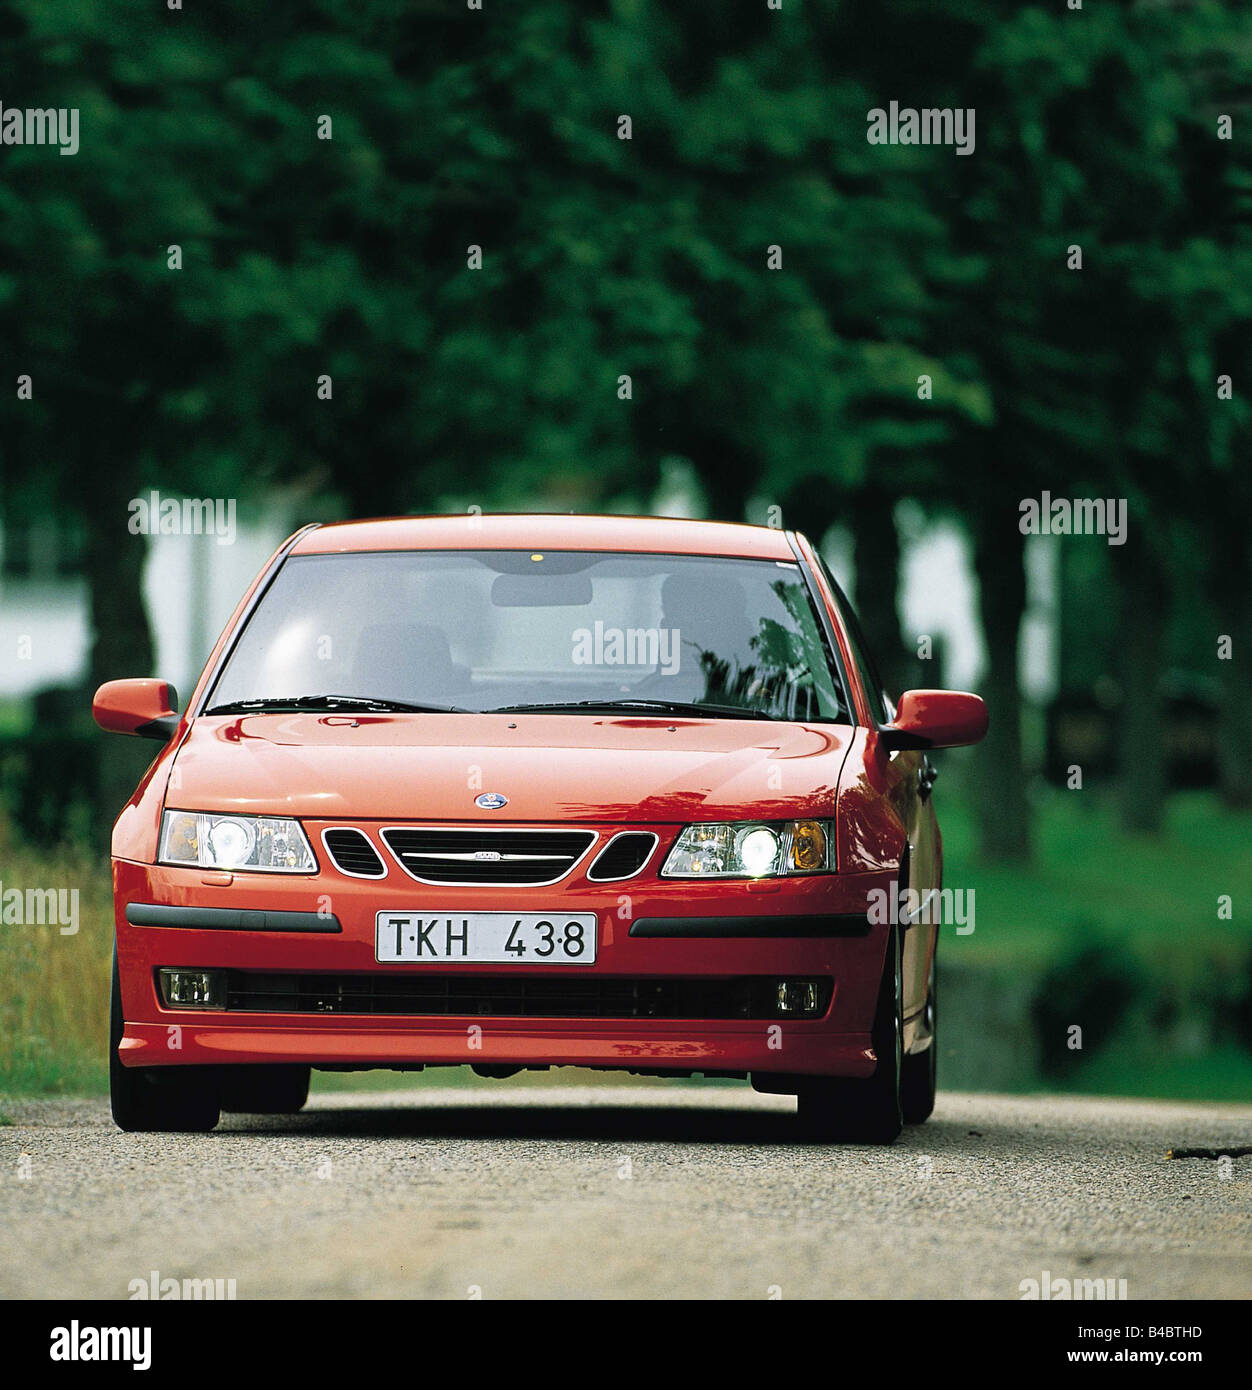 Car, Saab 9-3, Limousine, medium class, red, from the front, frontal view, standing, upholding, model year 2002 - Stock Image